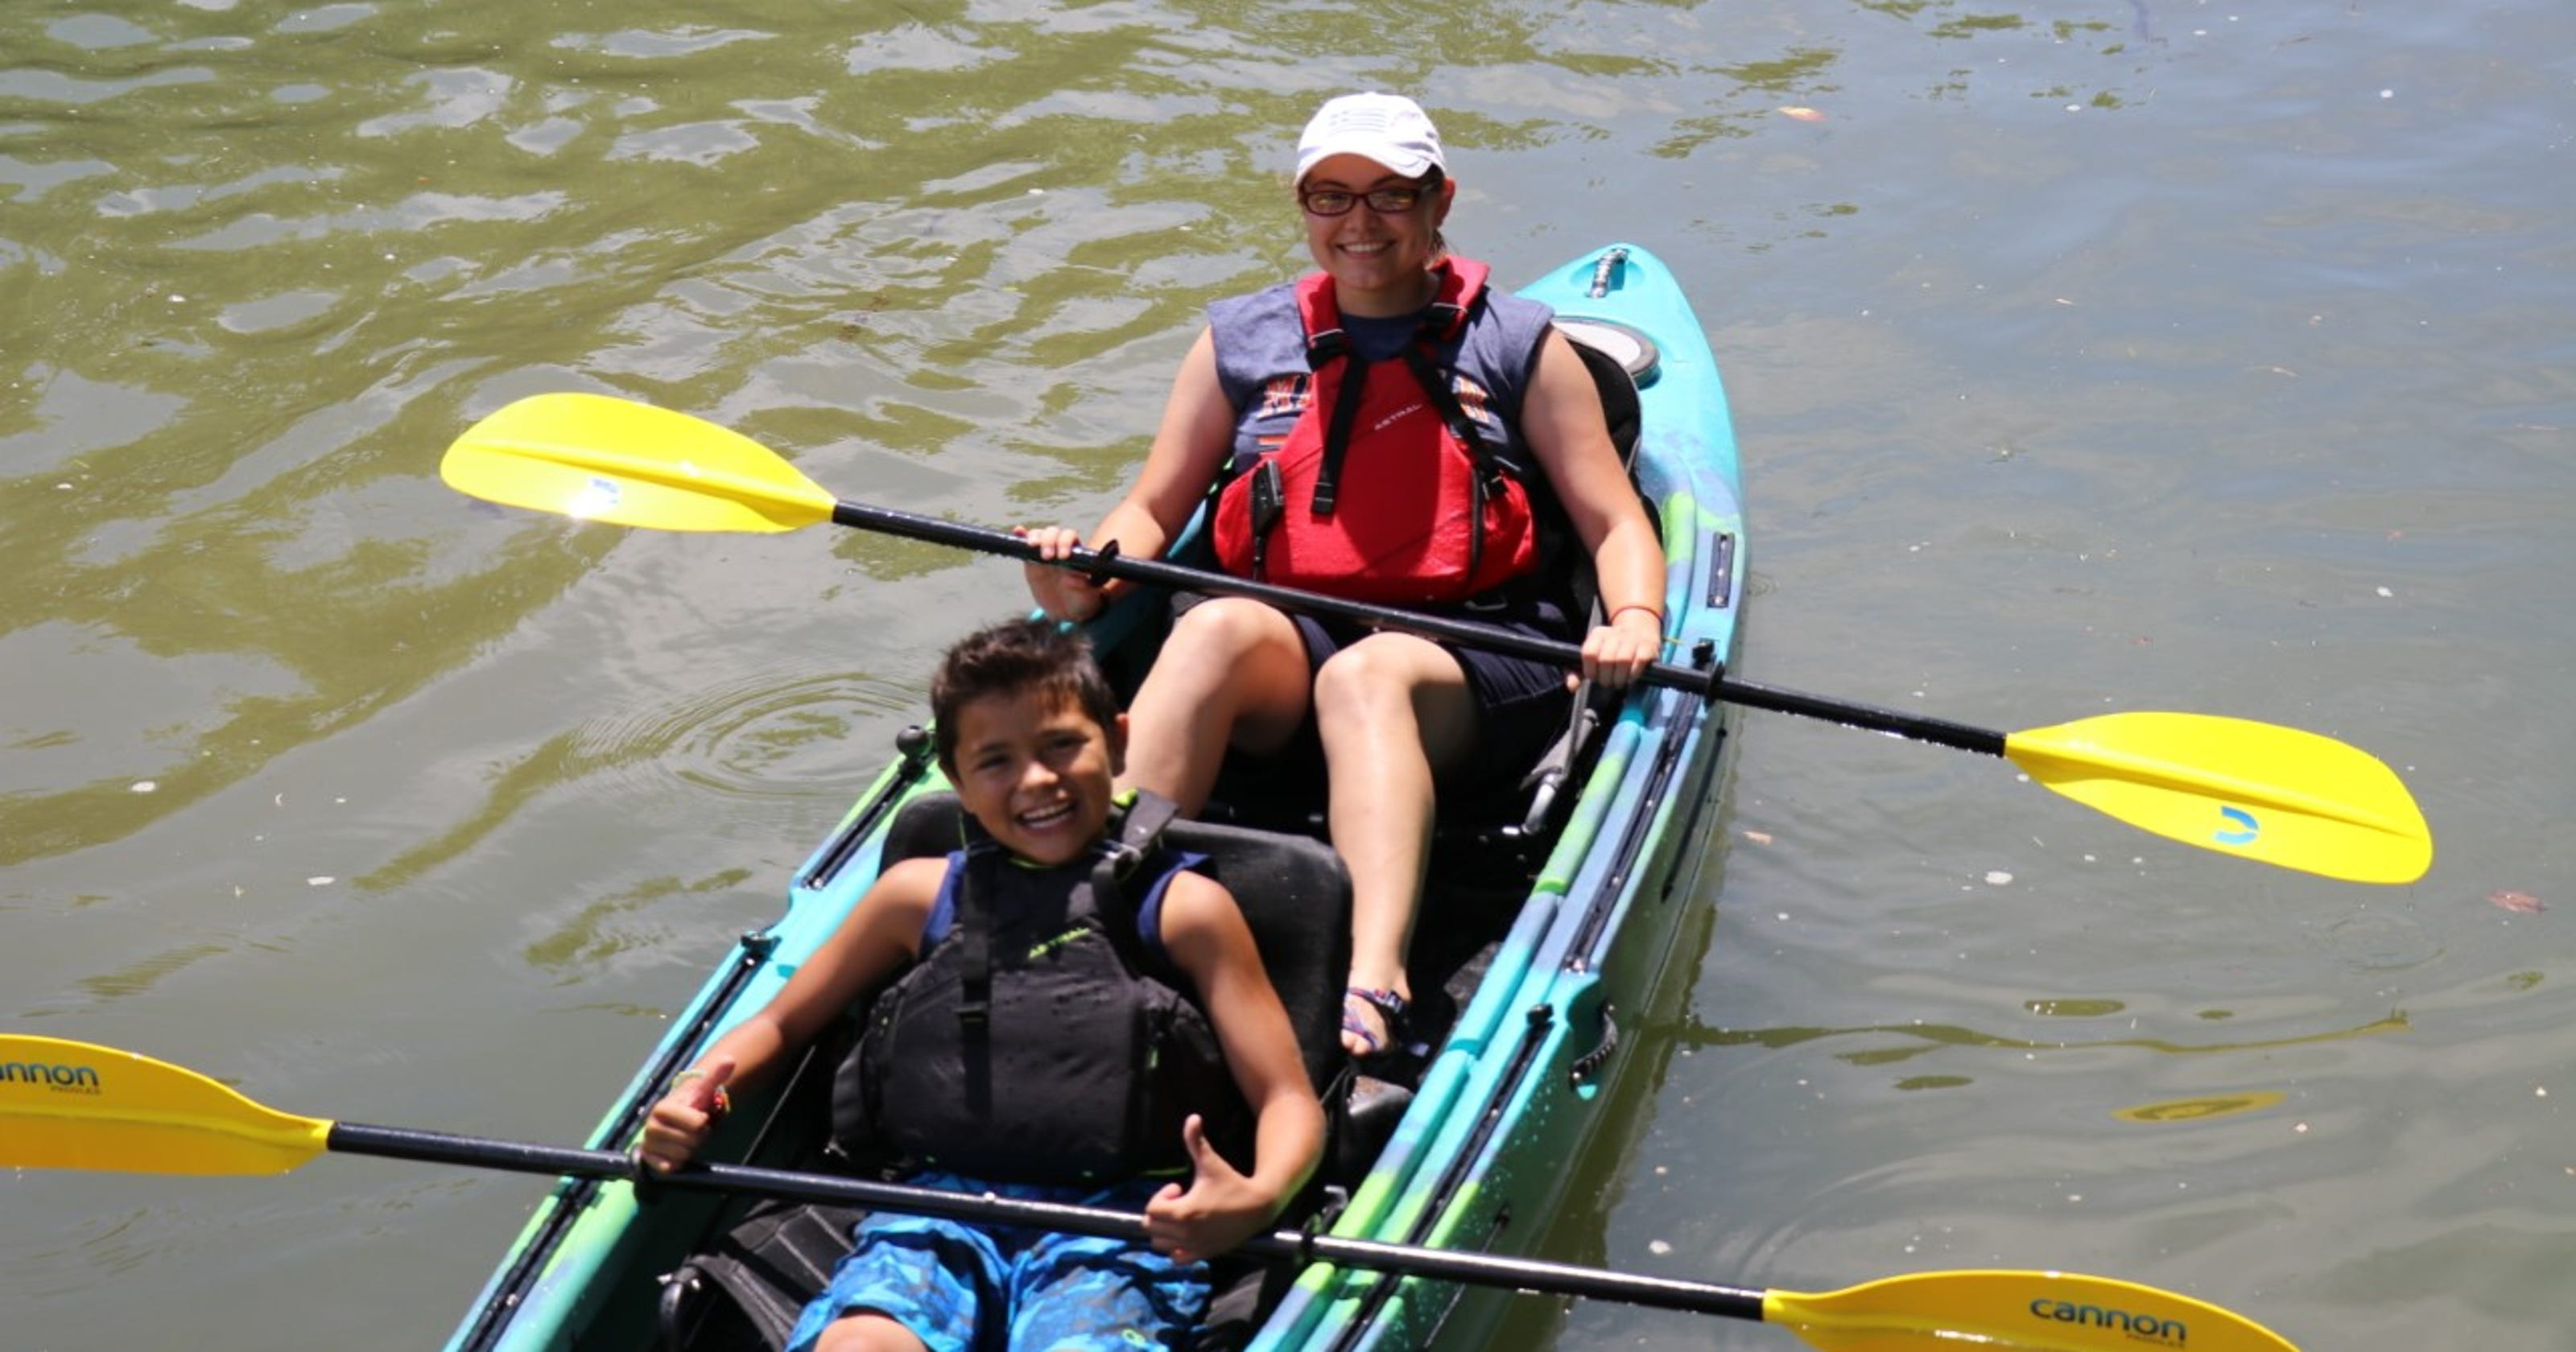 Summer Camps Guide 2019: How to keep kids busy in Knoxville